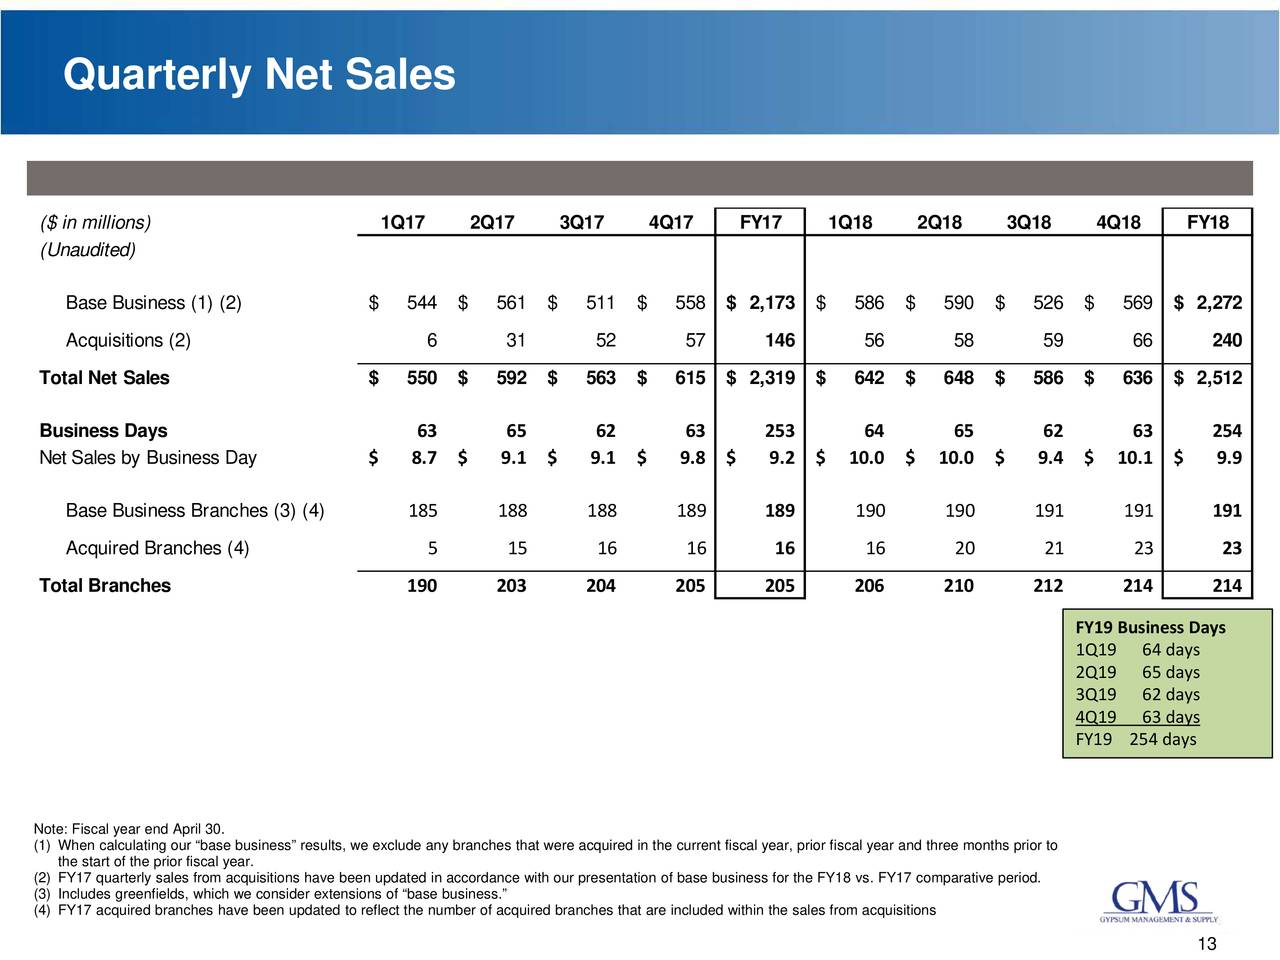 Gypsum Management and Supply 2018 Q4 - Results - Earnings